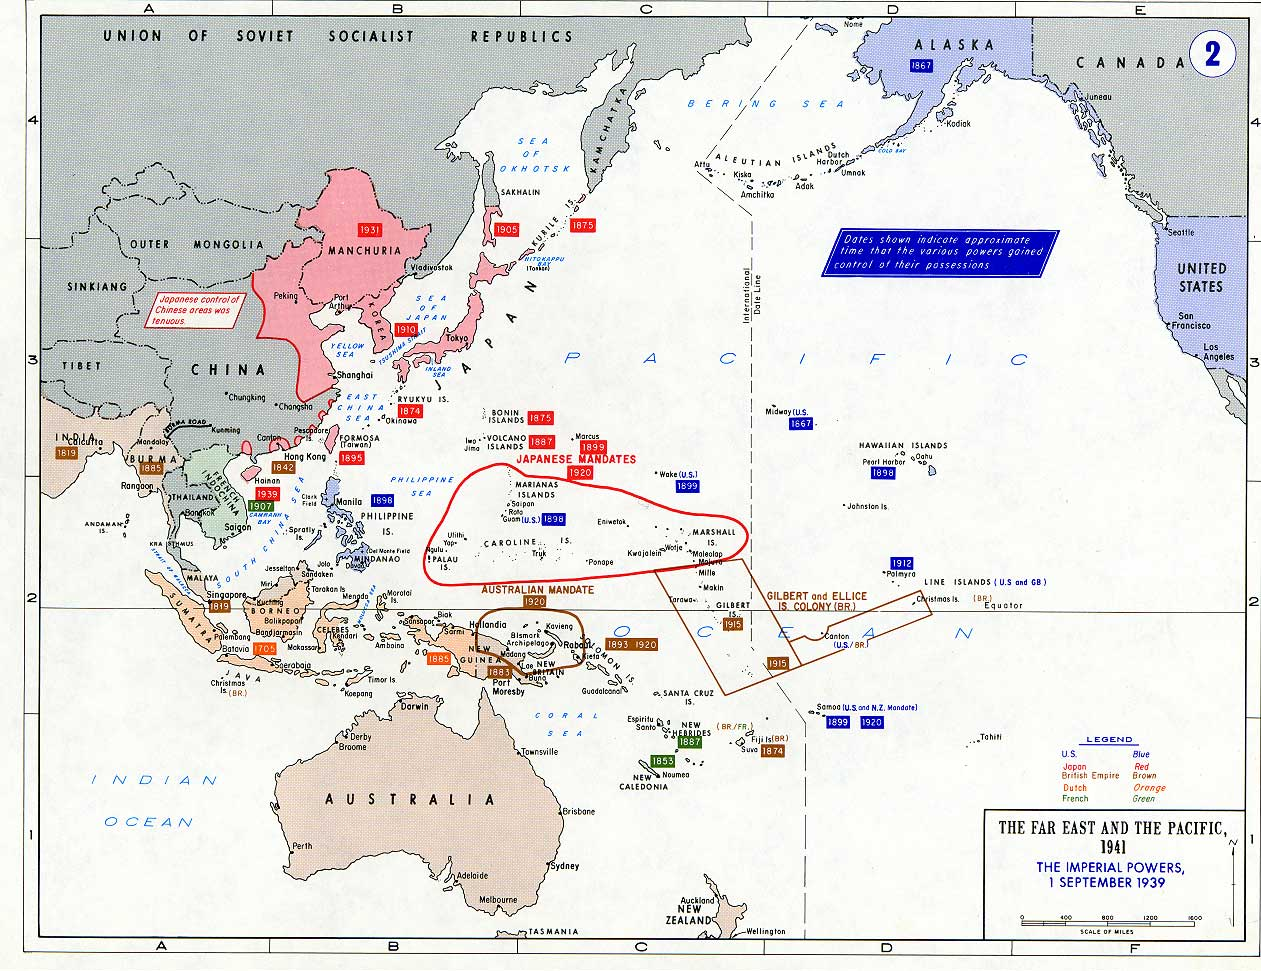 Pacific War - The Imperial Powers 1939